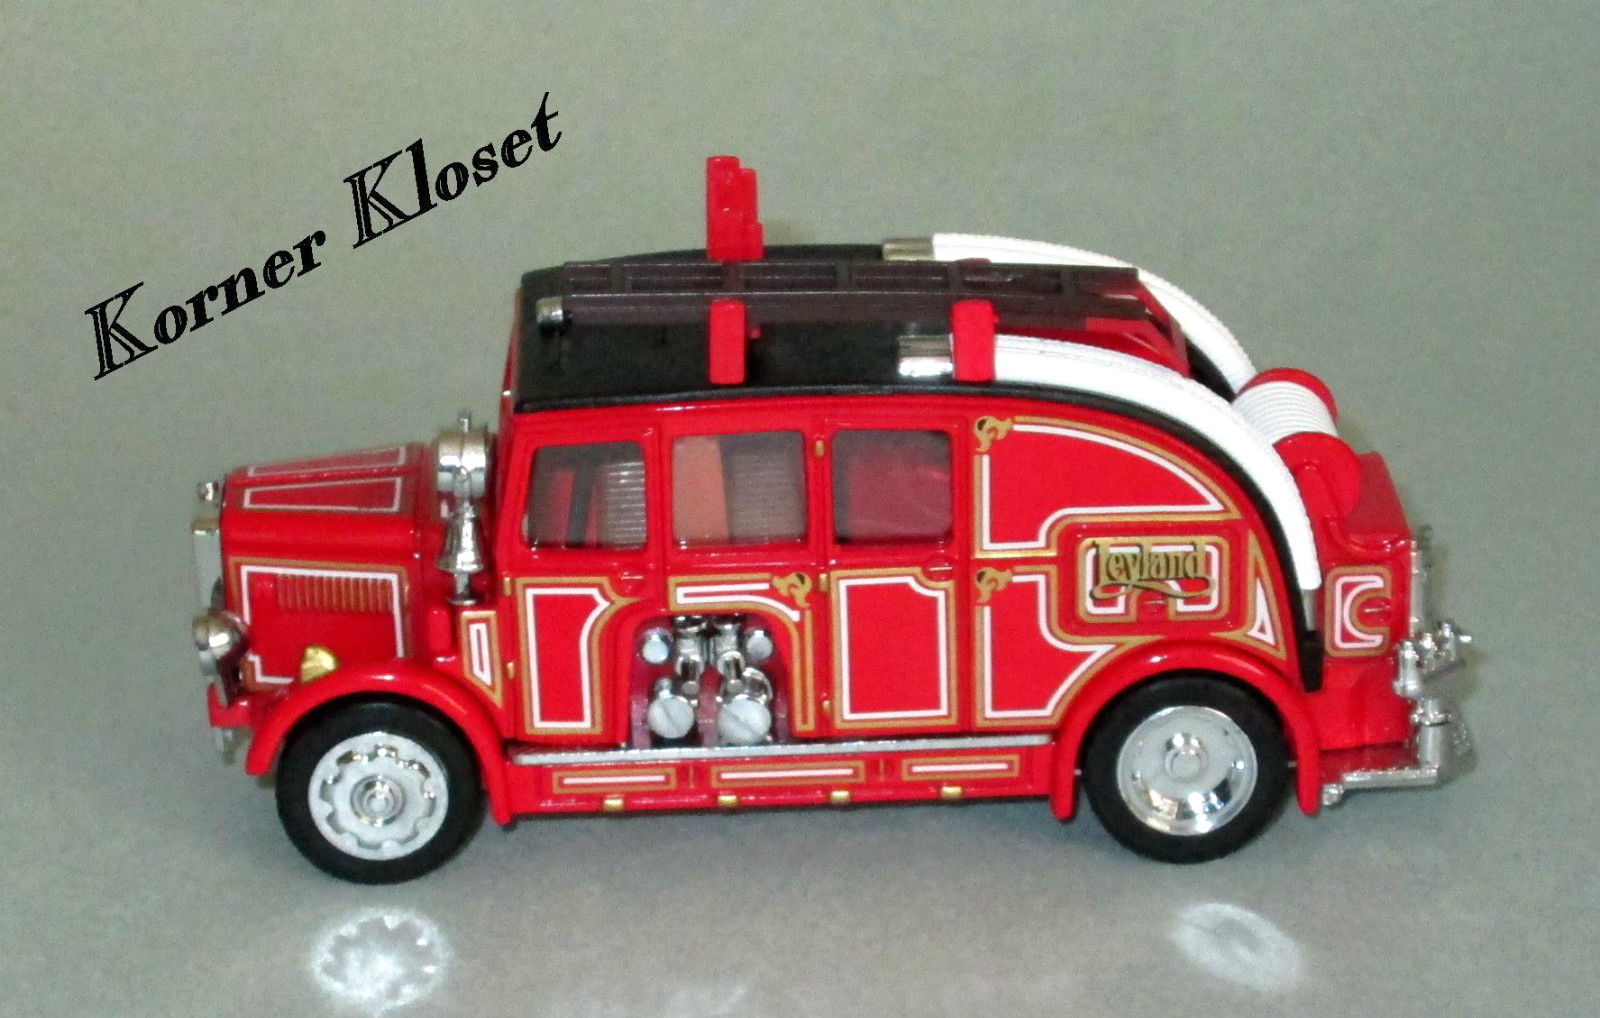 Matchbox 1936 Leyland Cub FK-7 Fire Engine & Escape Ladder-Fire Engine Series